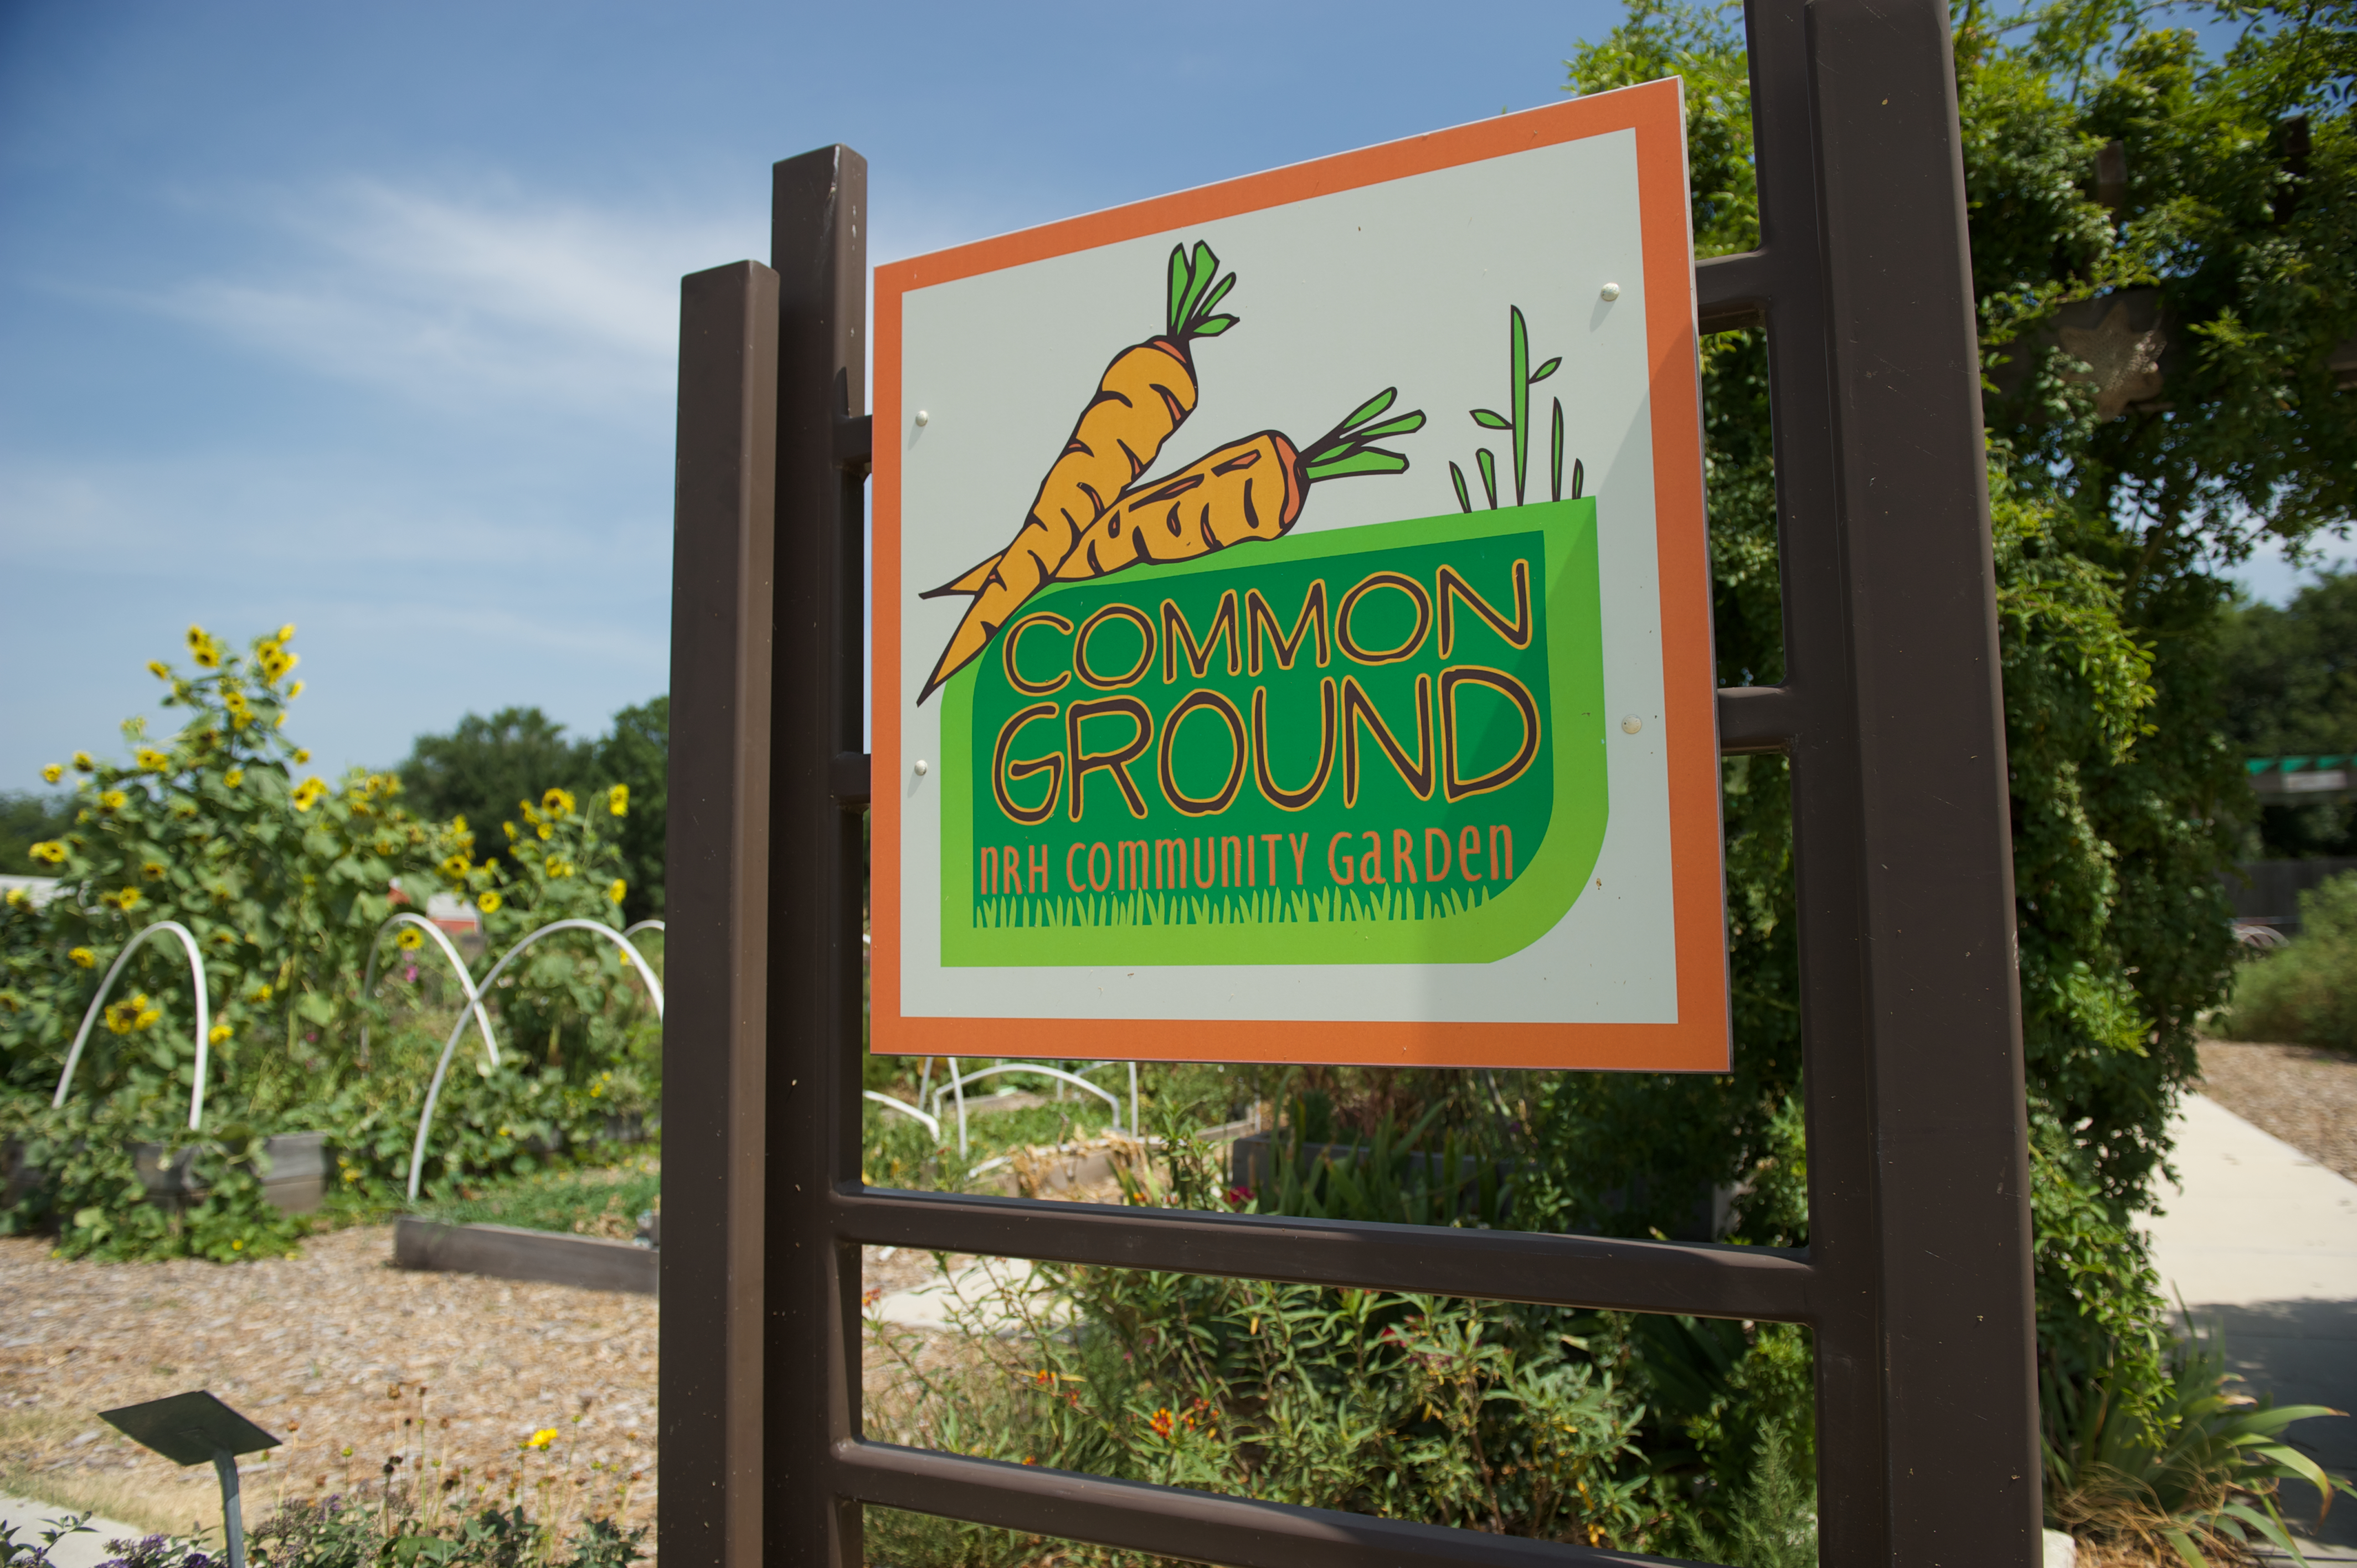 Common Ground NRH Community Garden